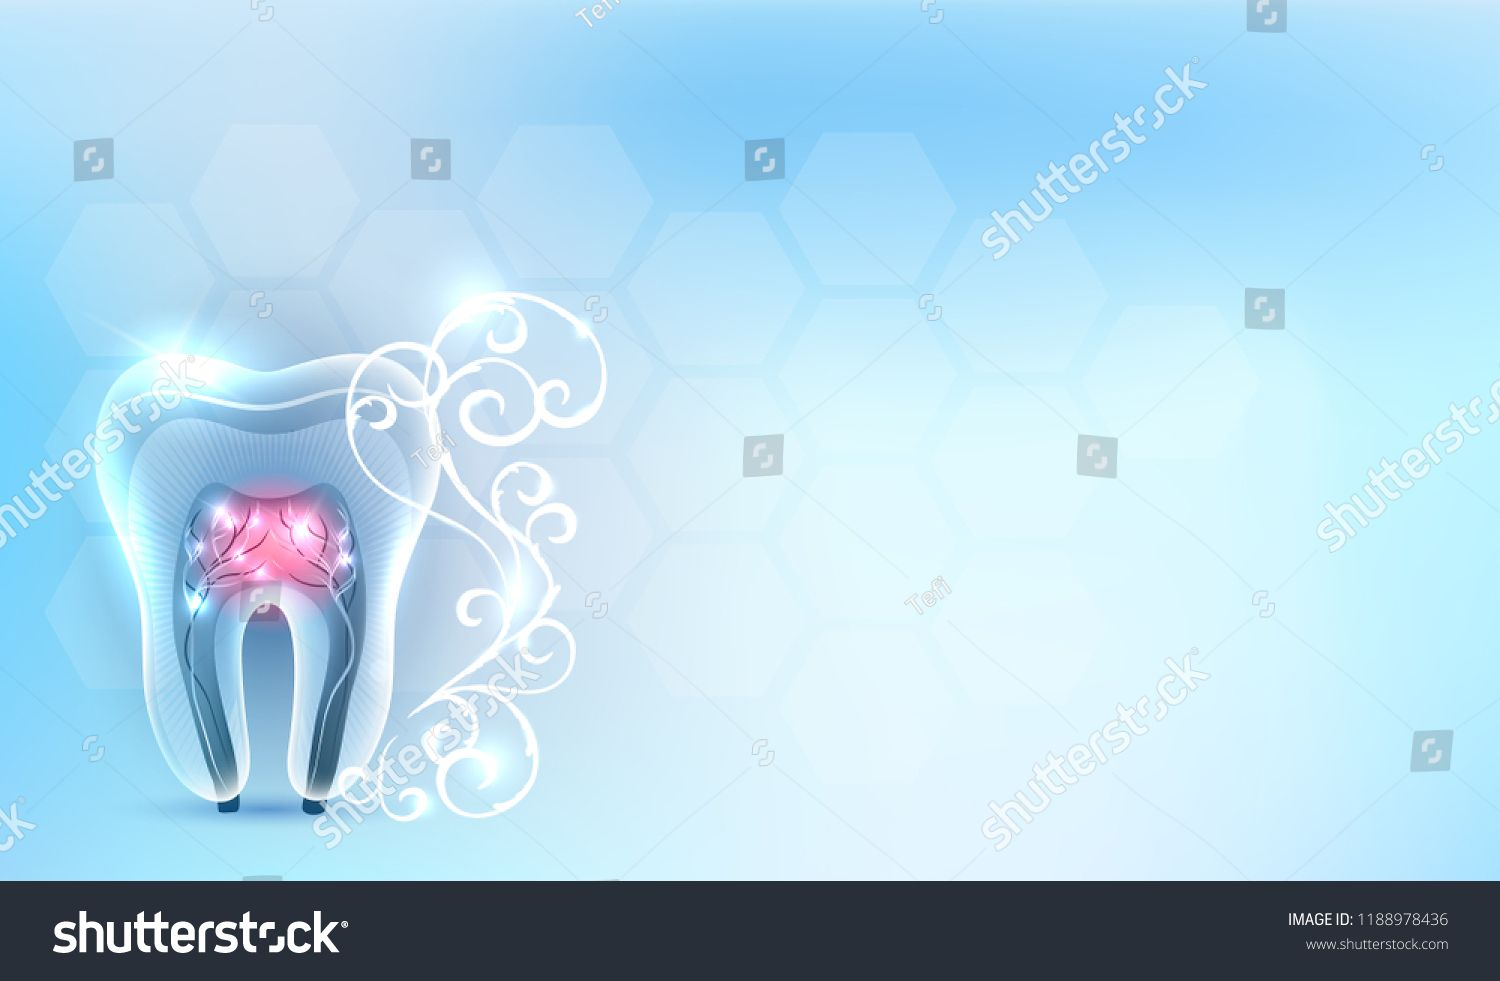 Beautiful Dental Wallpaper Tooth Teeth Symbol Icon With Roots White Abstract Swirly Flower On A Delicate Clean Dental Wallpaper Teeth Anatomy Dental Treatment